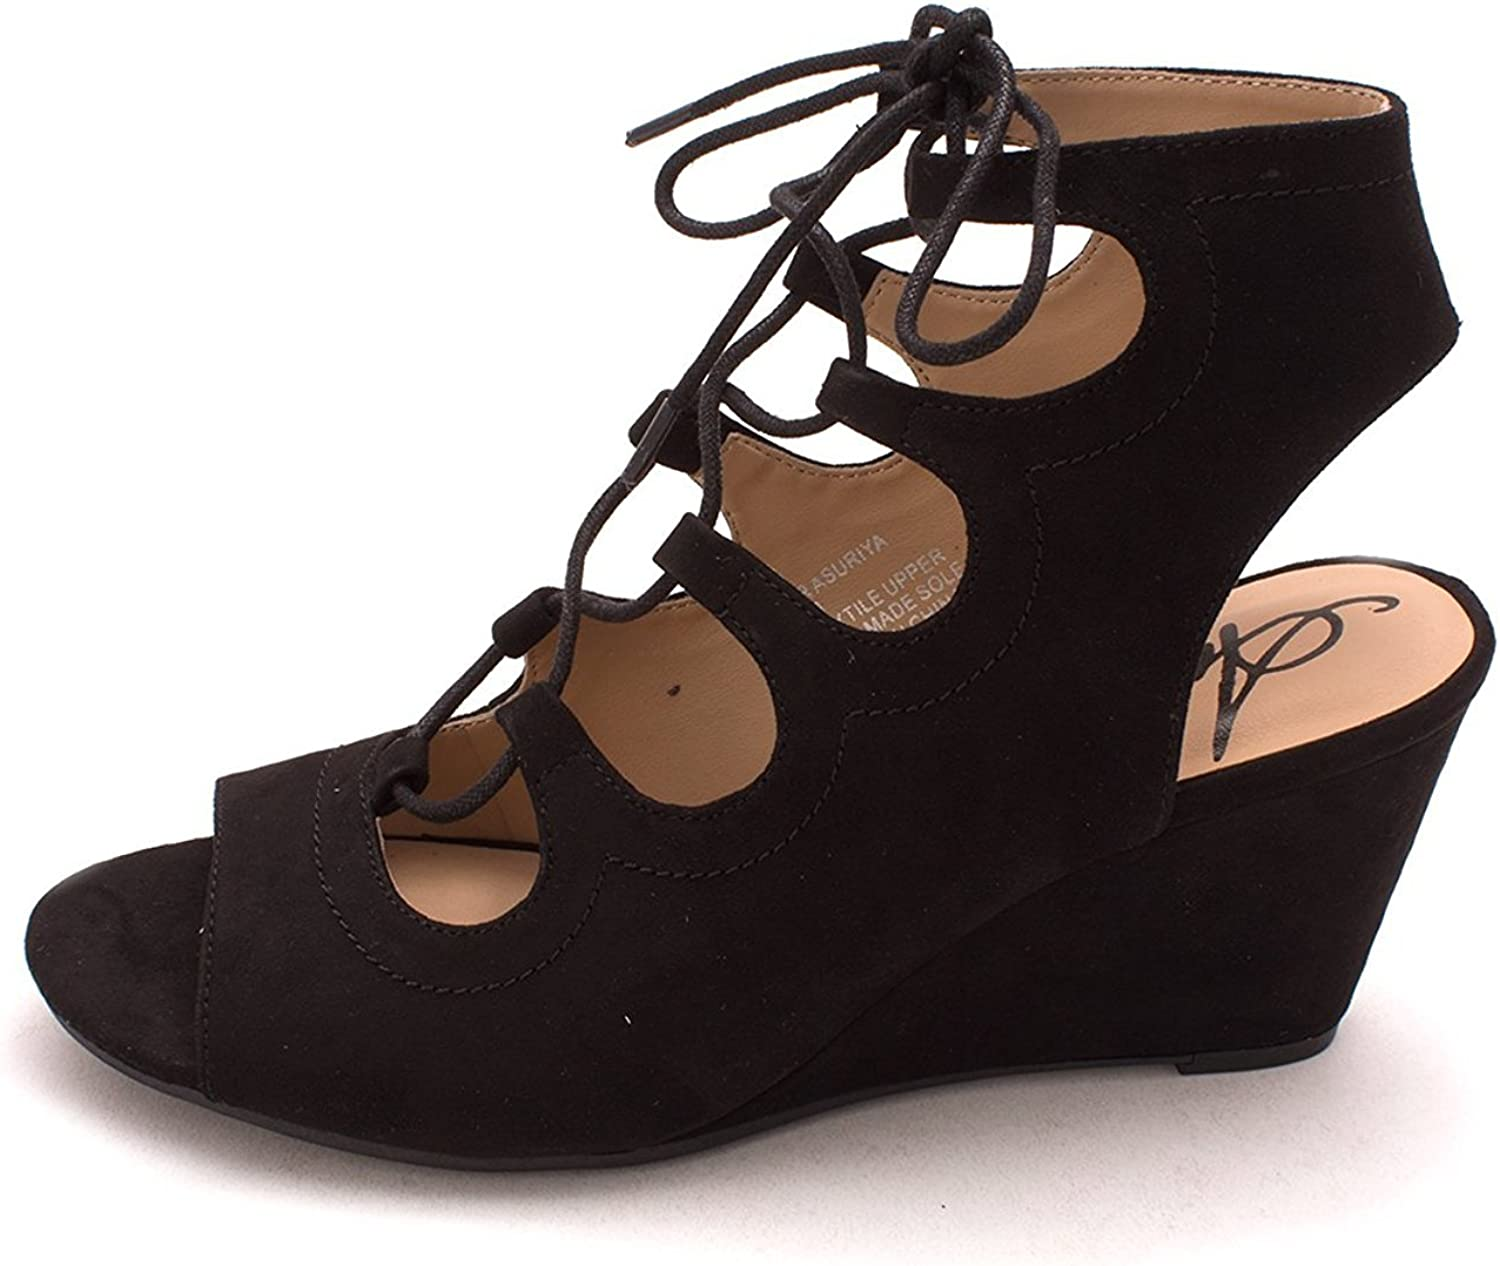 American Rag Womens Asuriya Fabric Open Toe Casual Strappy, Black, Size 7.0